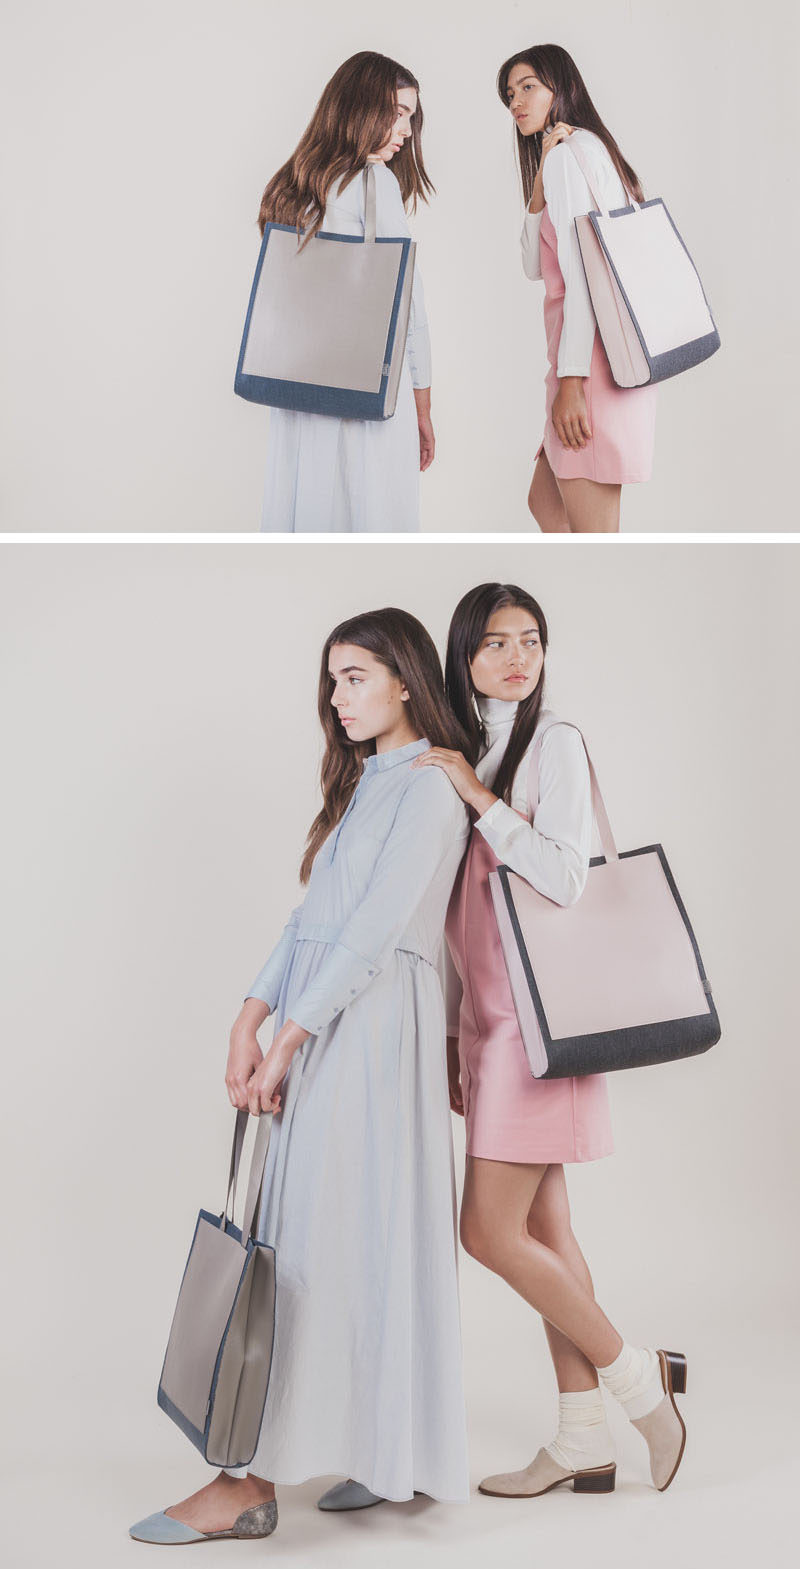 Women's Fashion Ideas - The M.R.K.T.'s Spring 2017 Collection Featuring Minimalist Bags // The two-toned Clark Tote features a structured body made from strong felt and MCRO SUEDE straps. Together the materials create a unique looking bag that's durable, lightweight, and versatile.